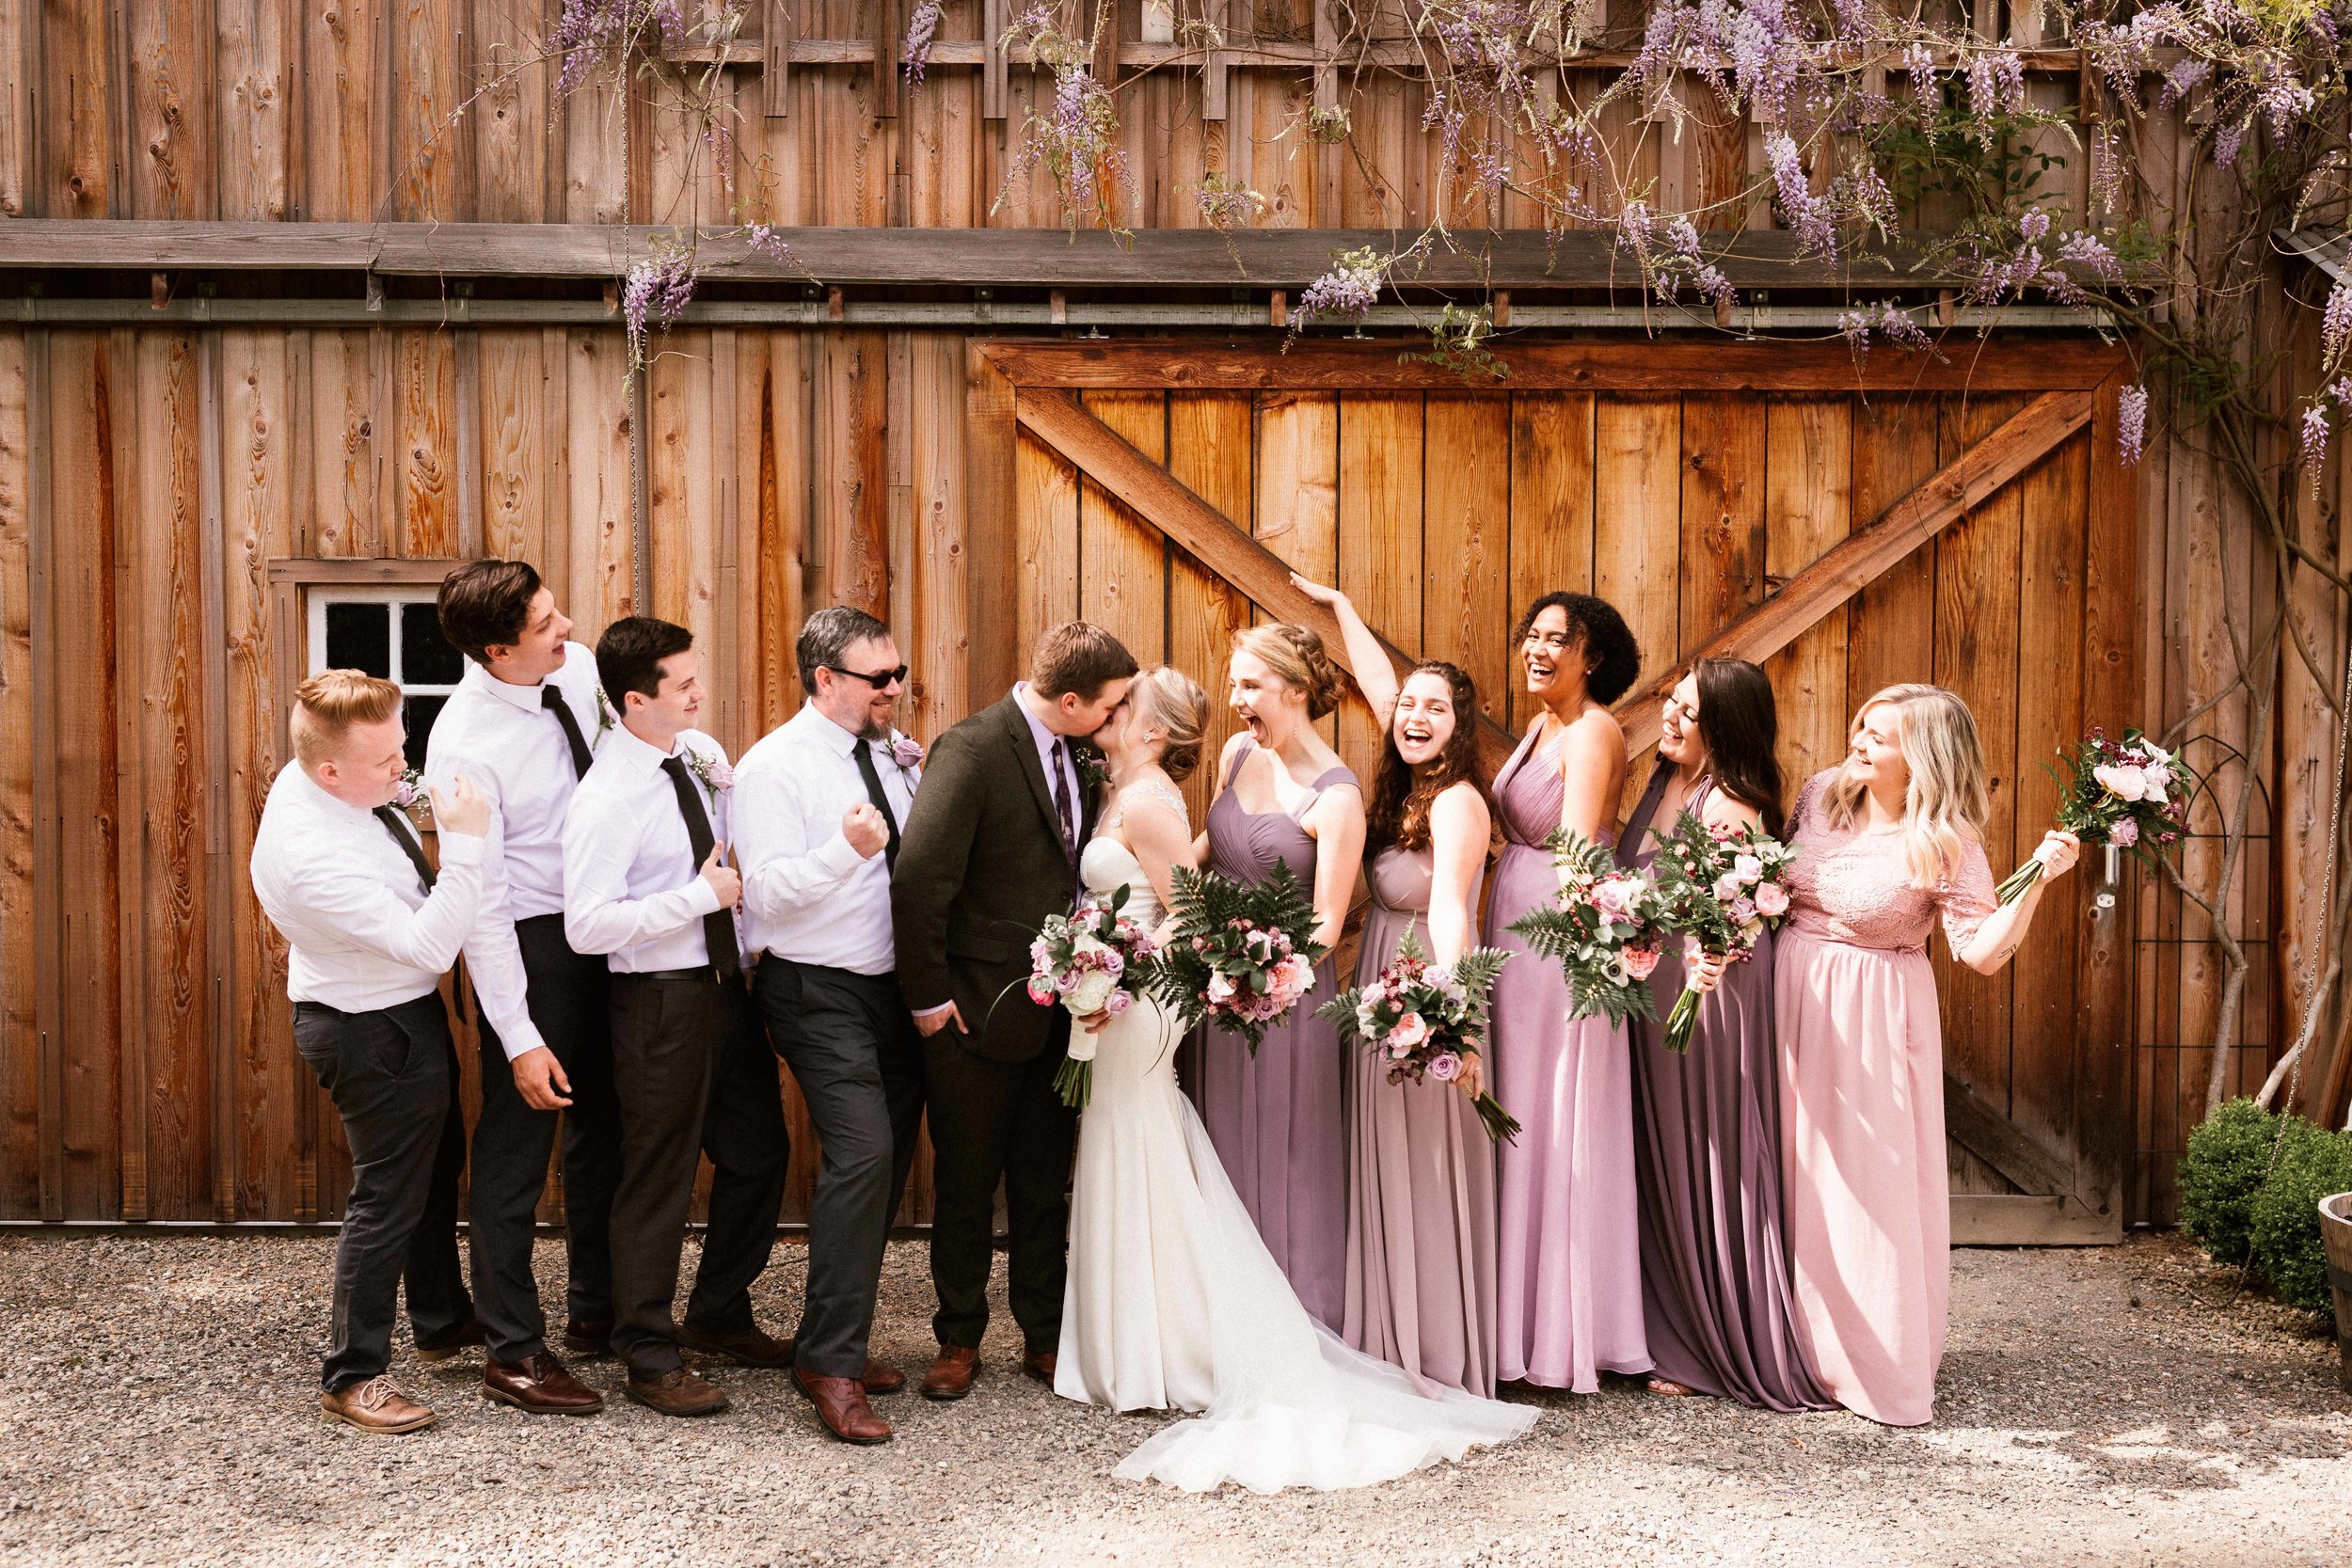 everson-barn-wedding-68.jpg